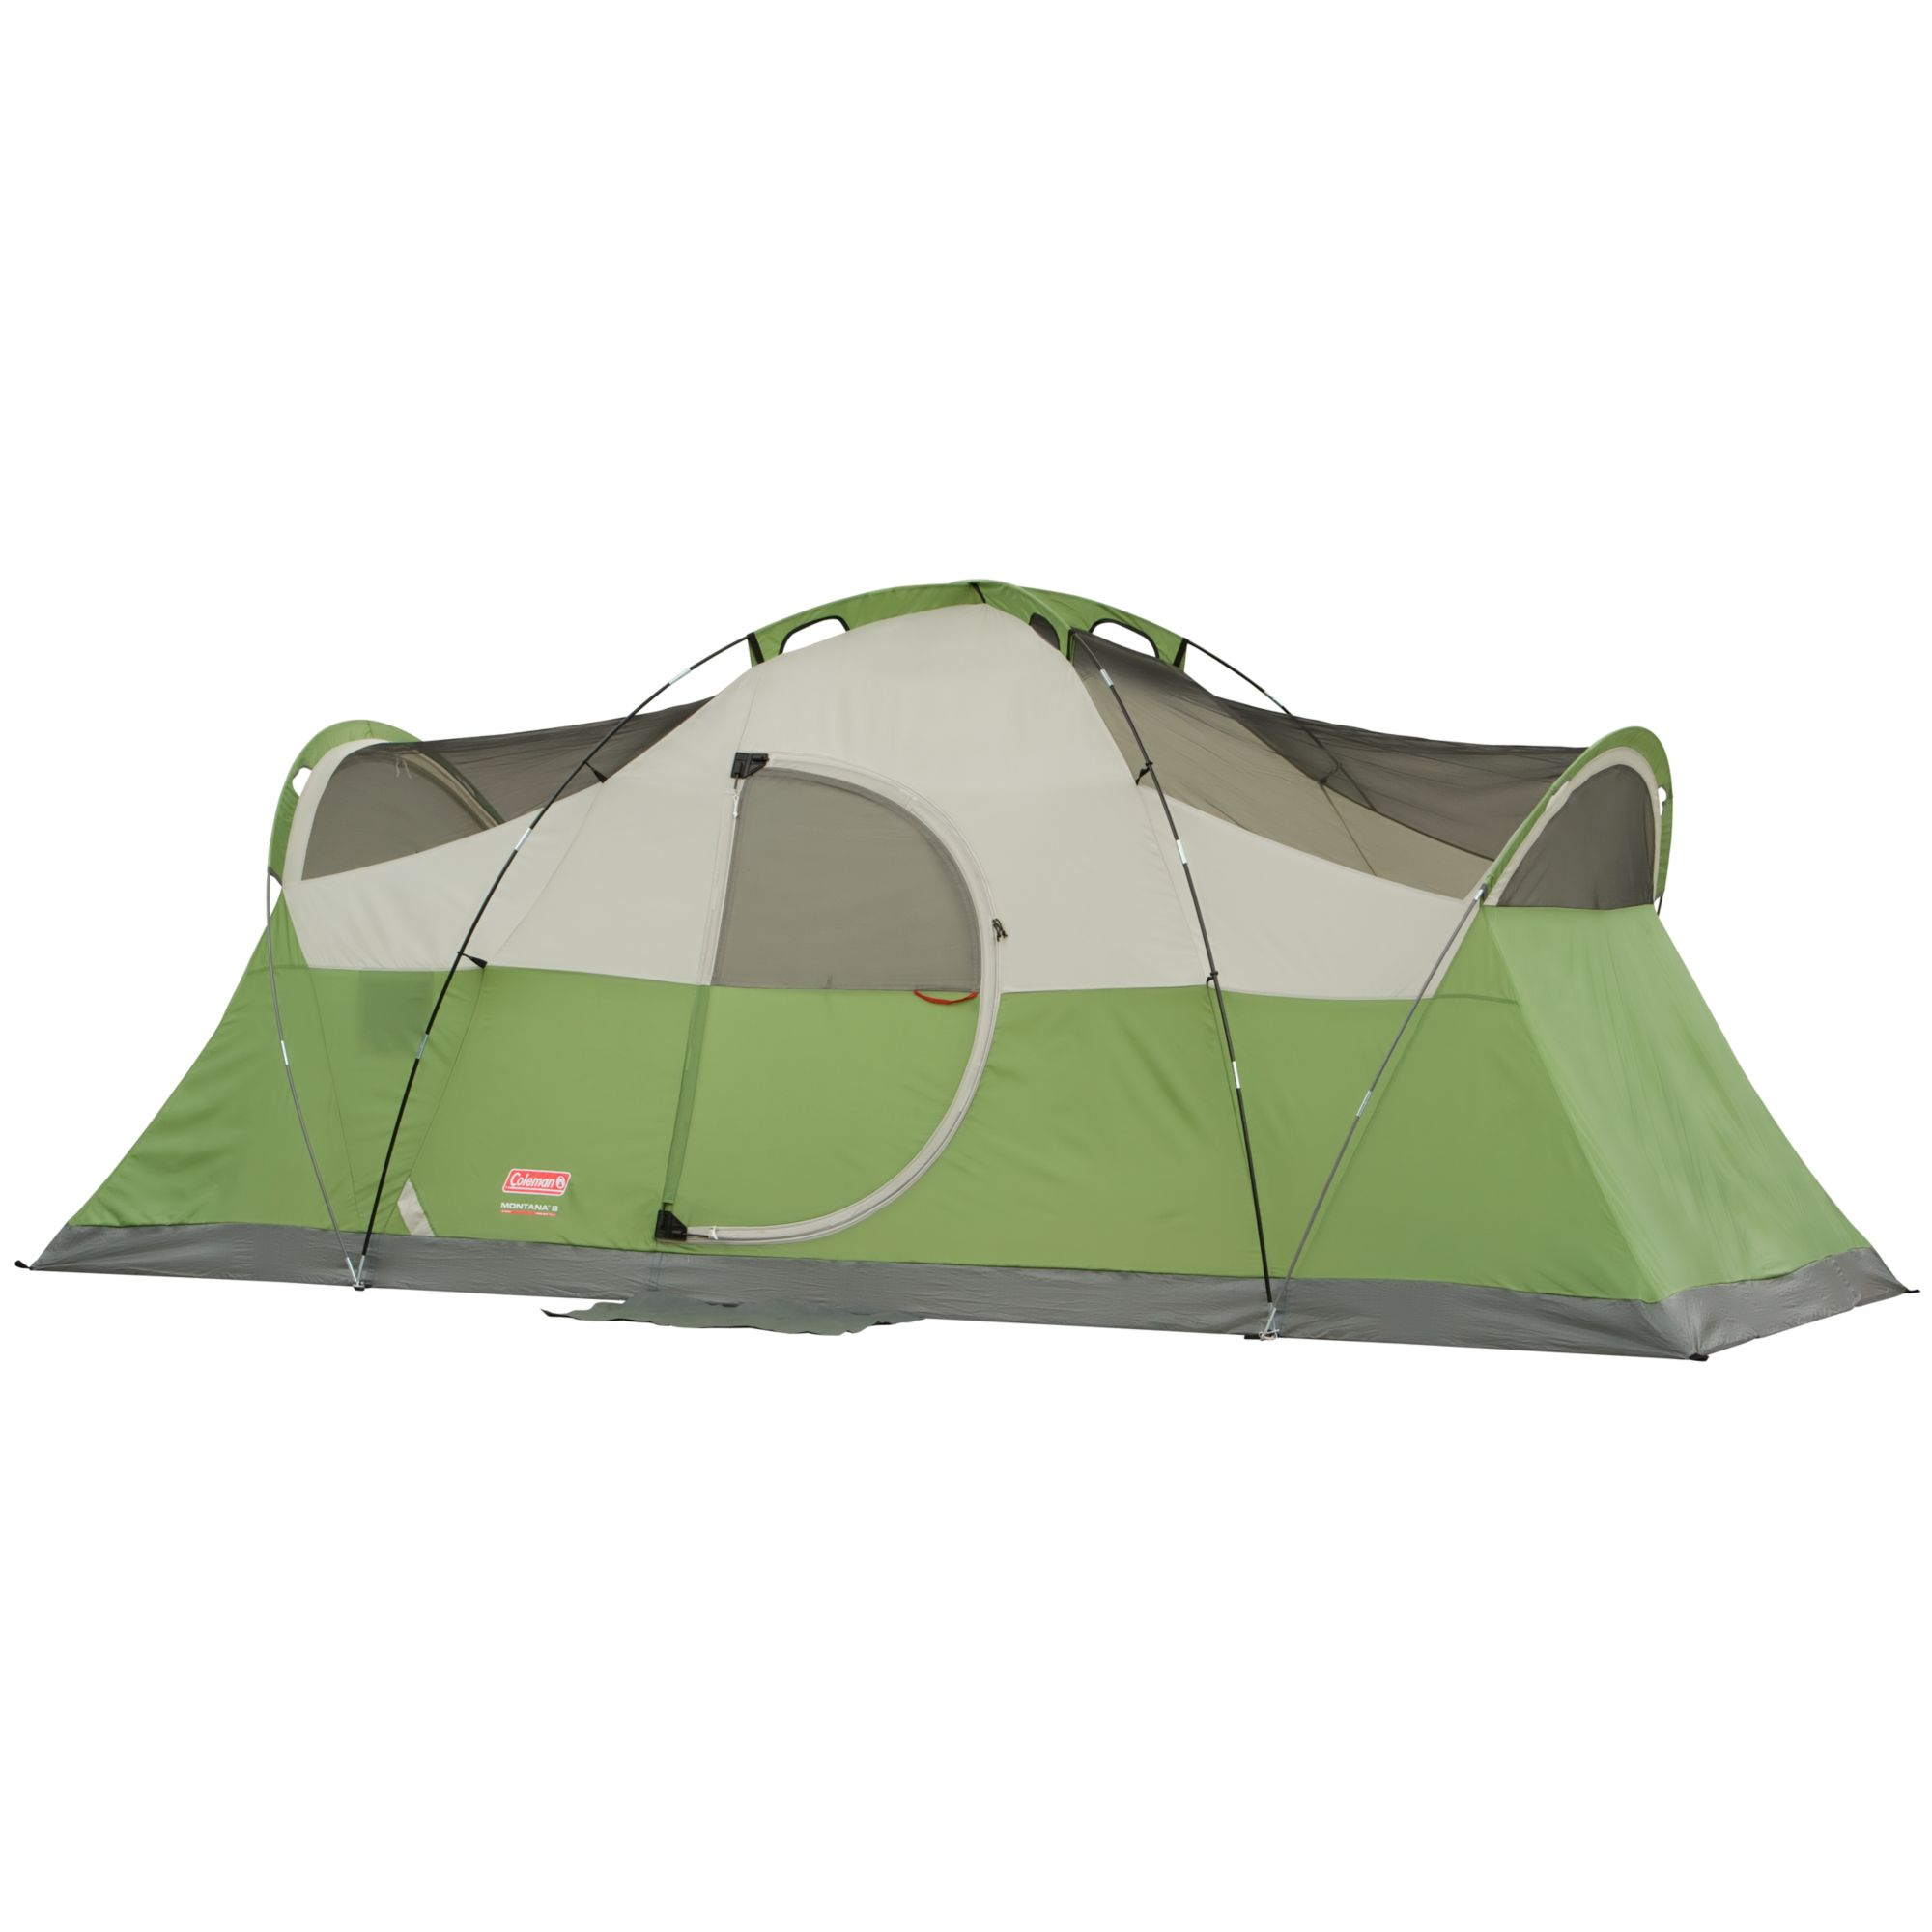 Montana 8 person tent coleman montana 8 person tent sciox Choice Image